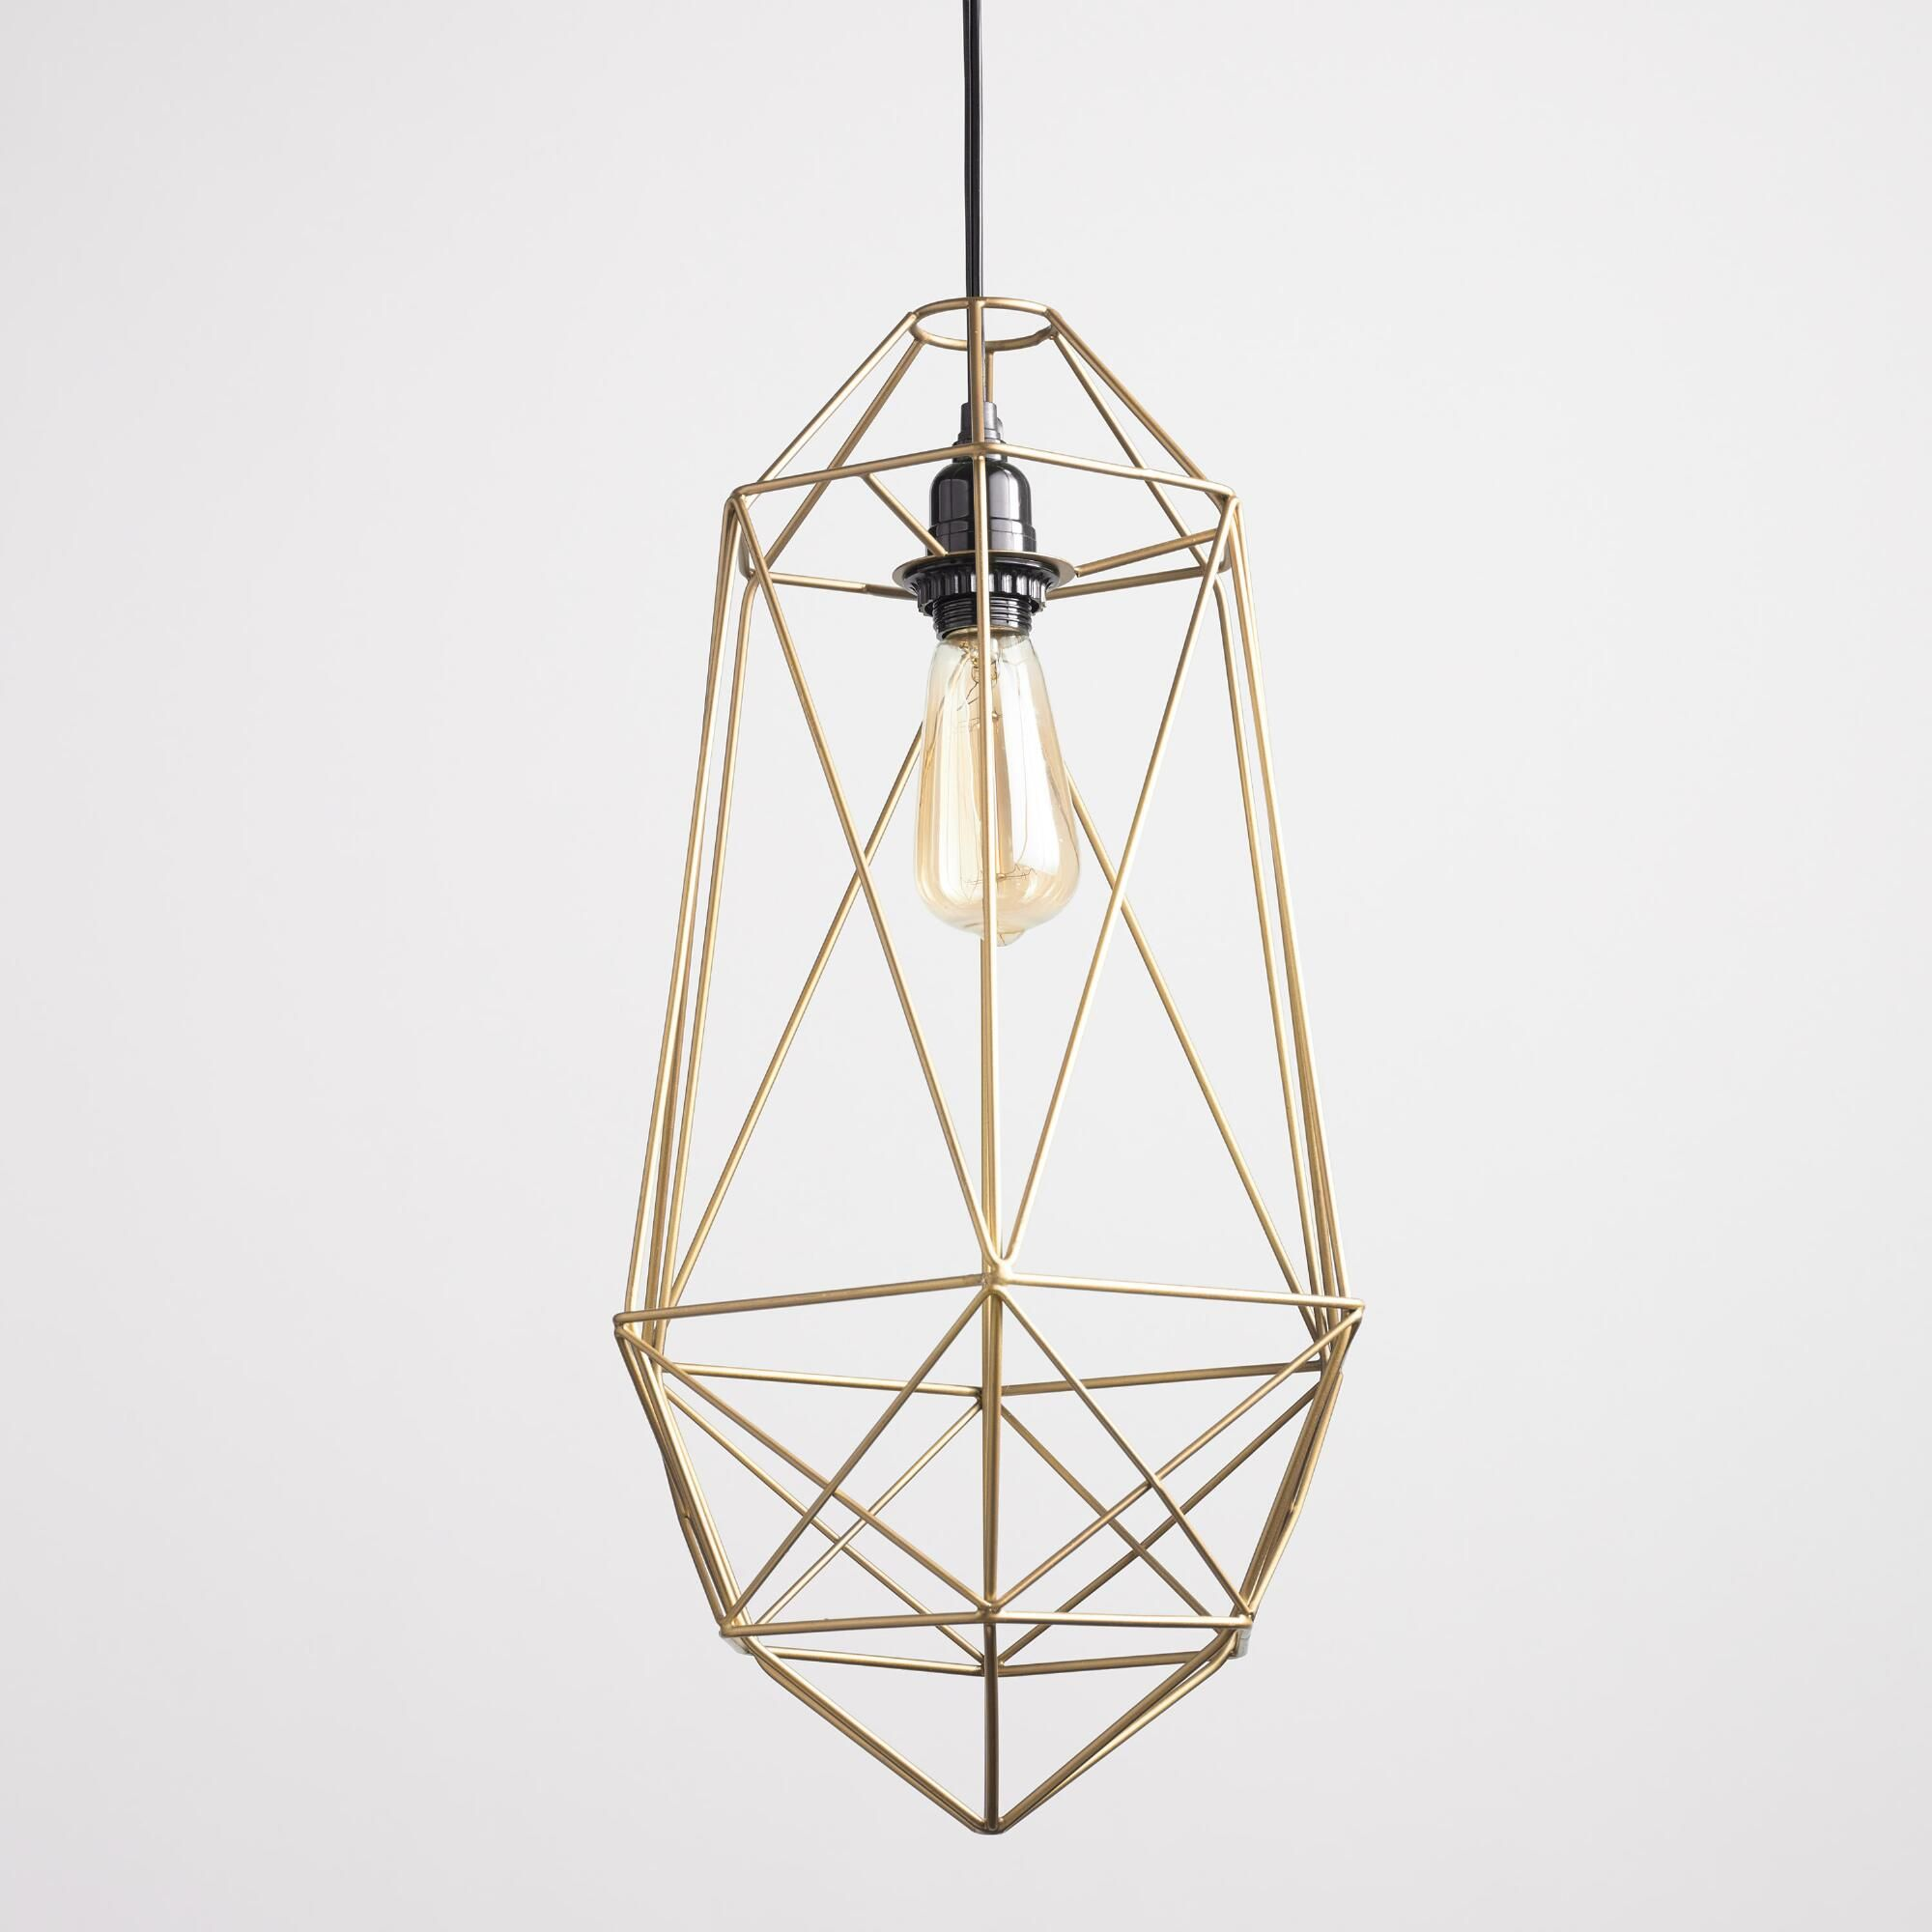 Our Exclusive Collins Lantern Brings Classic Good Looks: Crafted Of Iron Wire With A Sophisticated Antique Gold